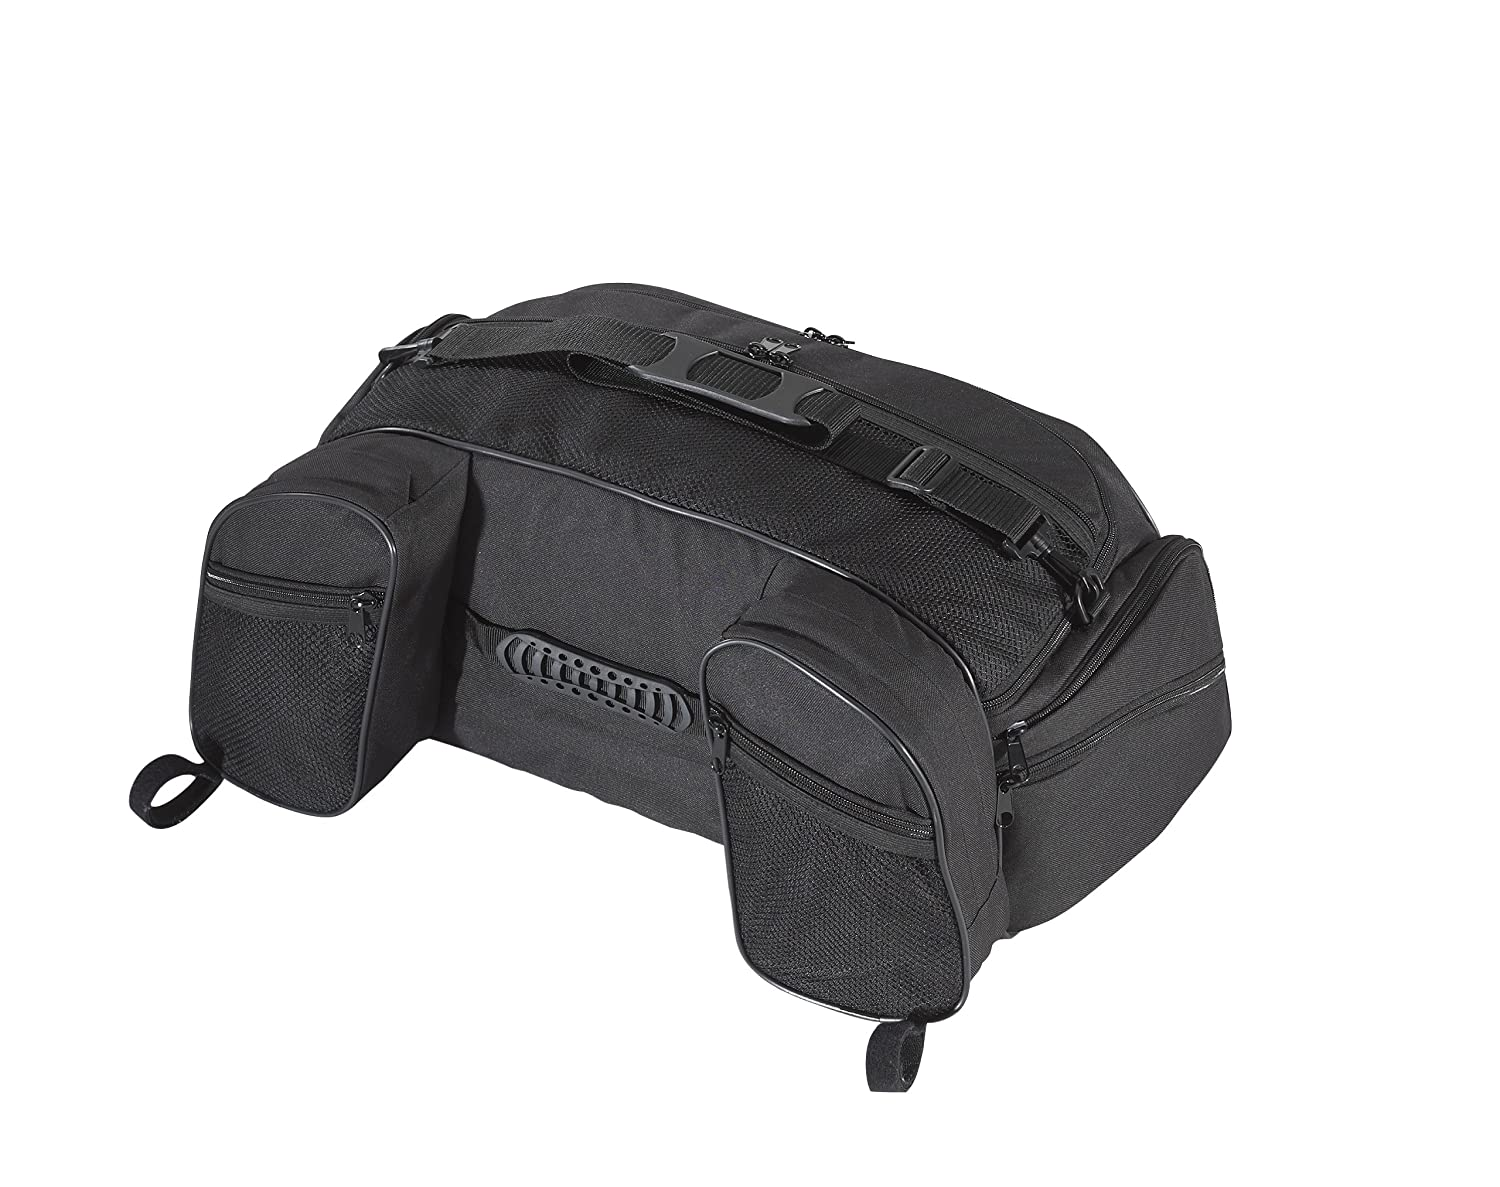 UltraGard 4-603 Black Touring Luggage Rack Bag